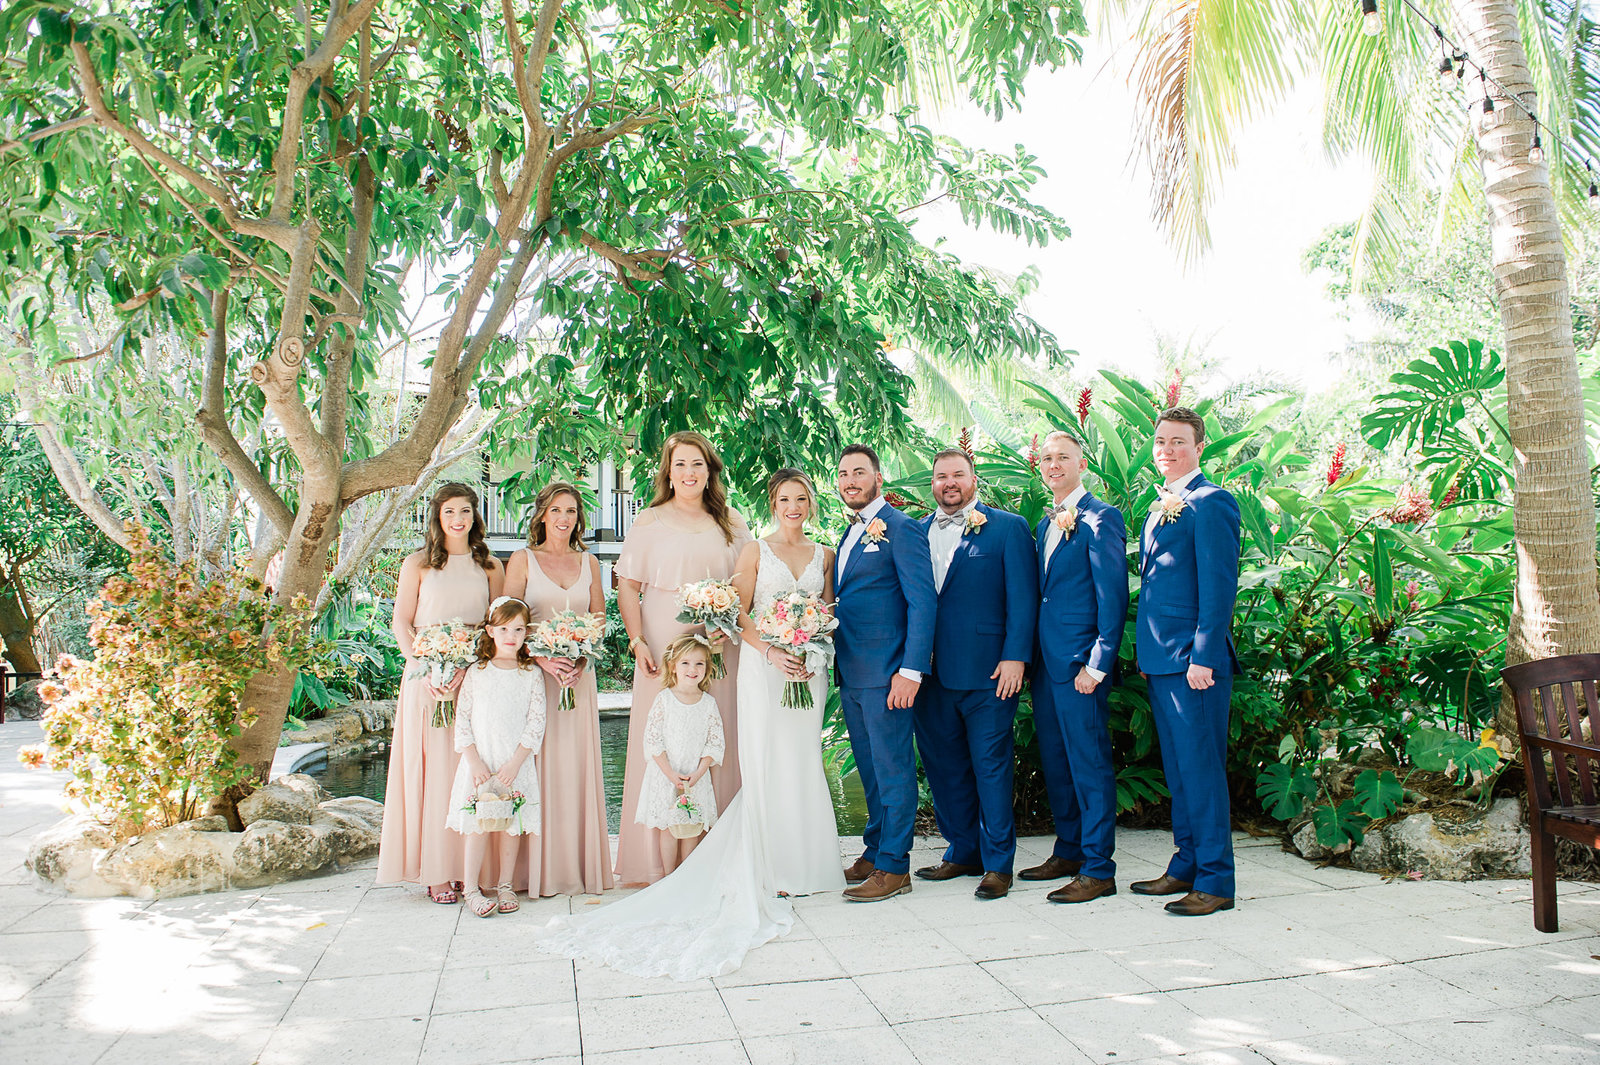 Bridal Party - Sundy House by Palm Beach Photography, Inc.